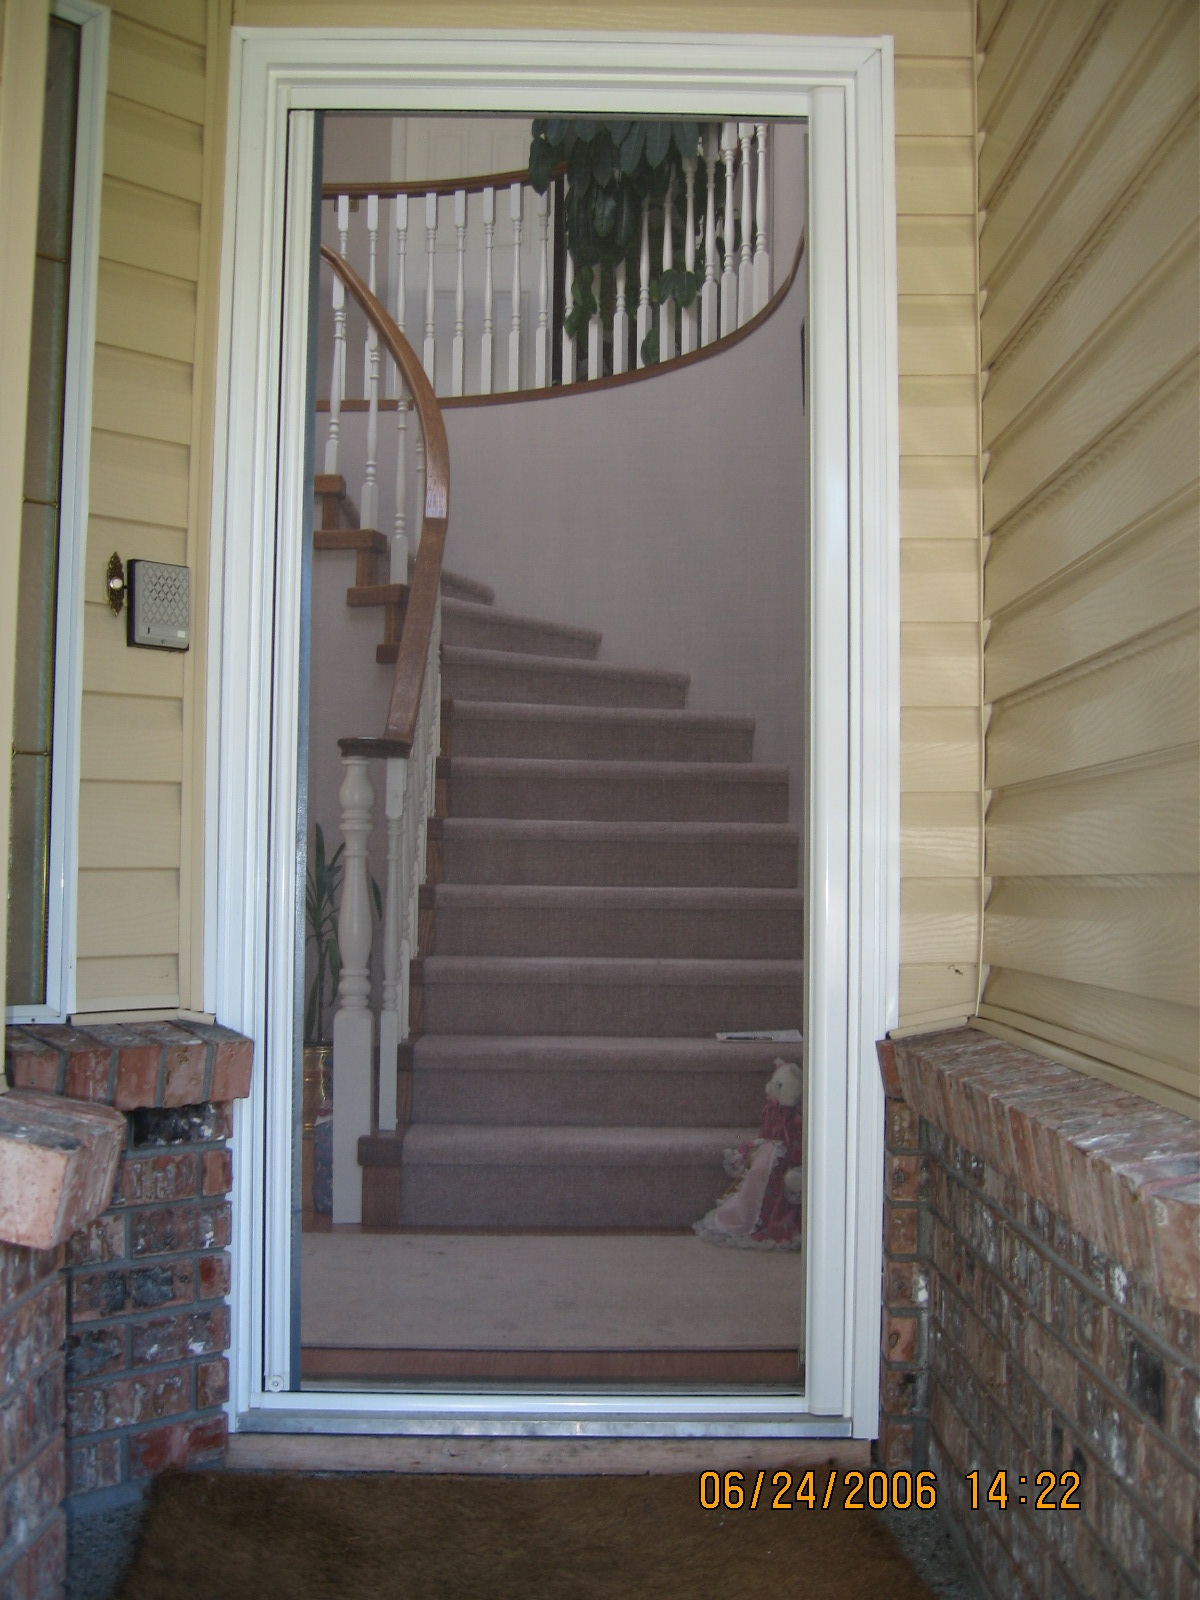 Omnifine Retractable Screen doors with stairs and cream wood wall